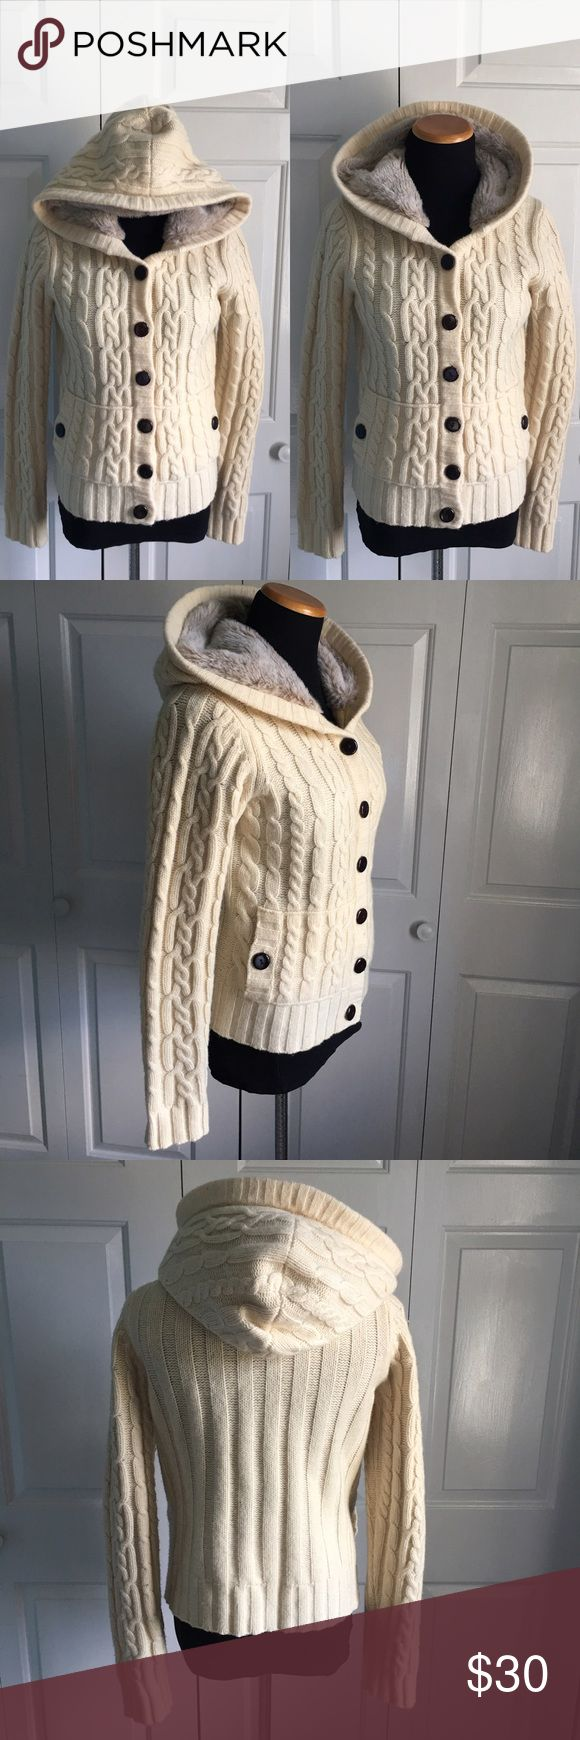 GAP Cable Knit Faux Fur Hoodie Thick and cozy cream colored cable knit button down hoodie with Faux fur in hood. Size medium. Excellent condition! GAP Sweaters